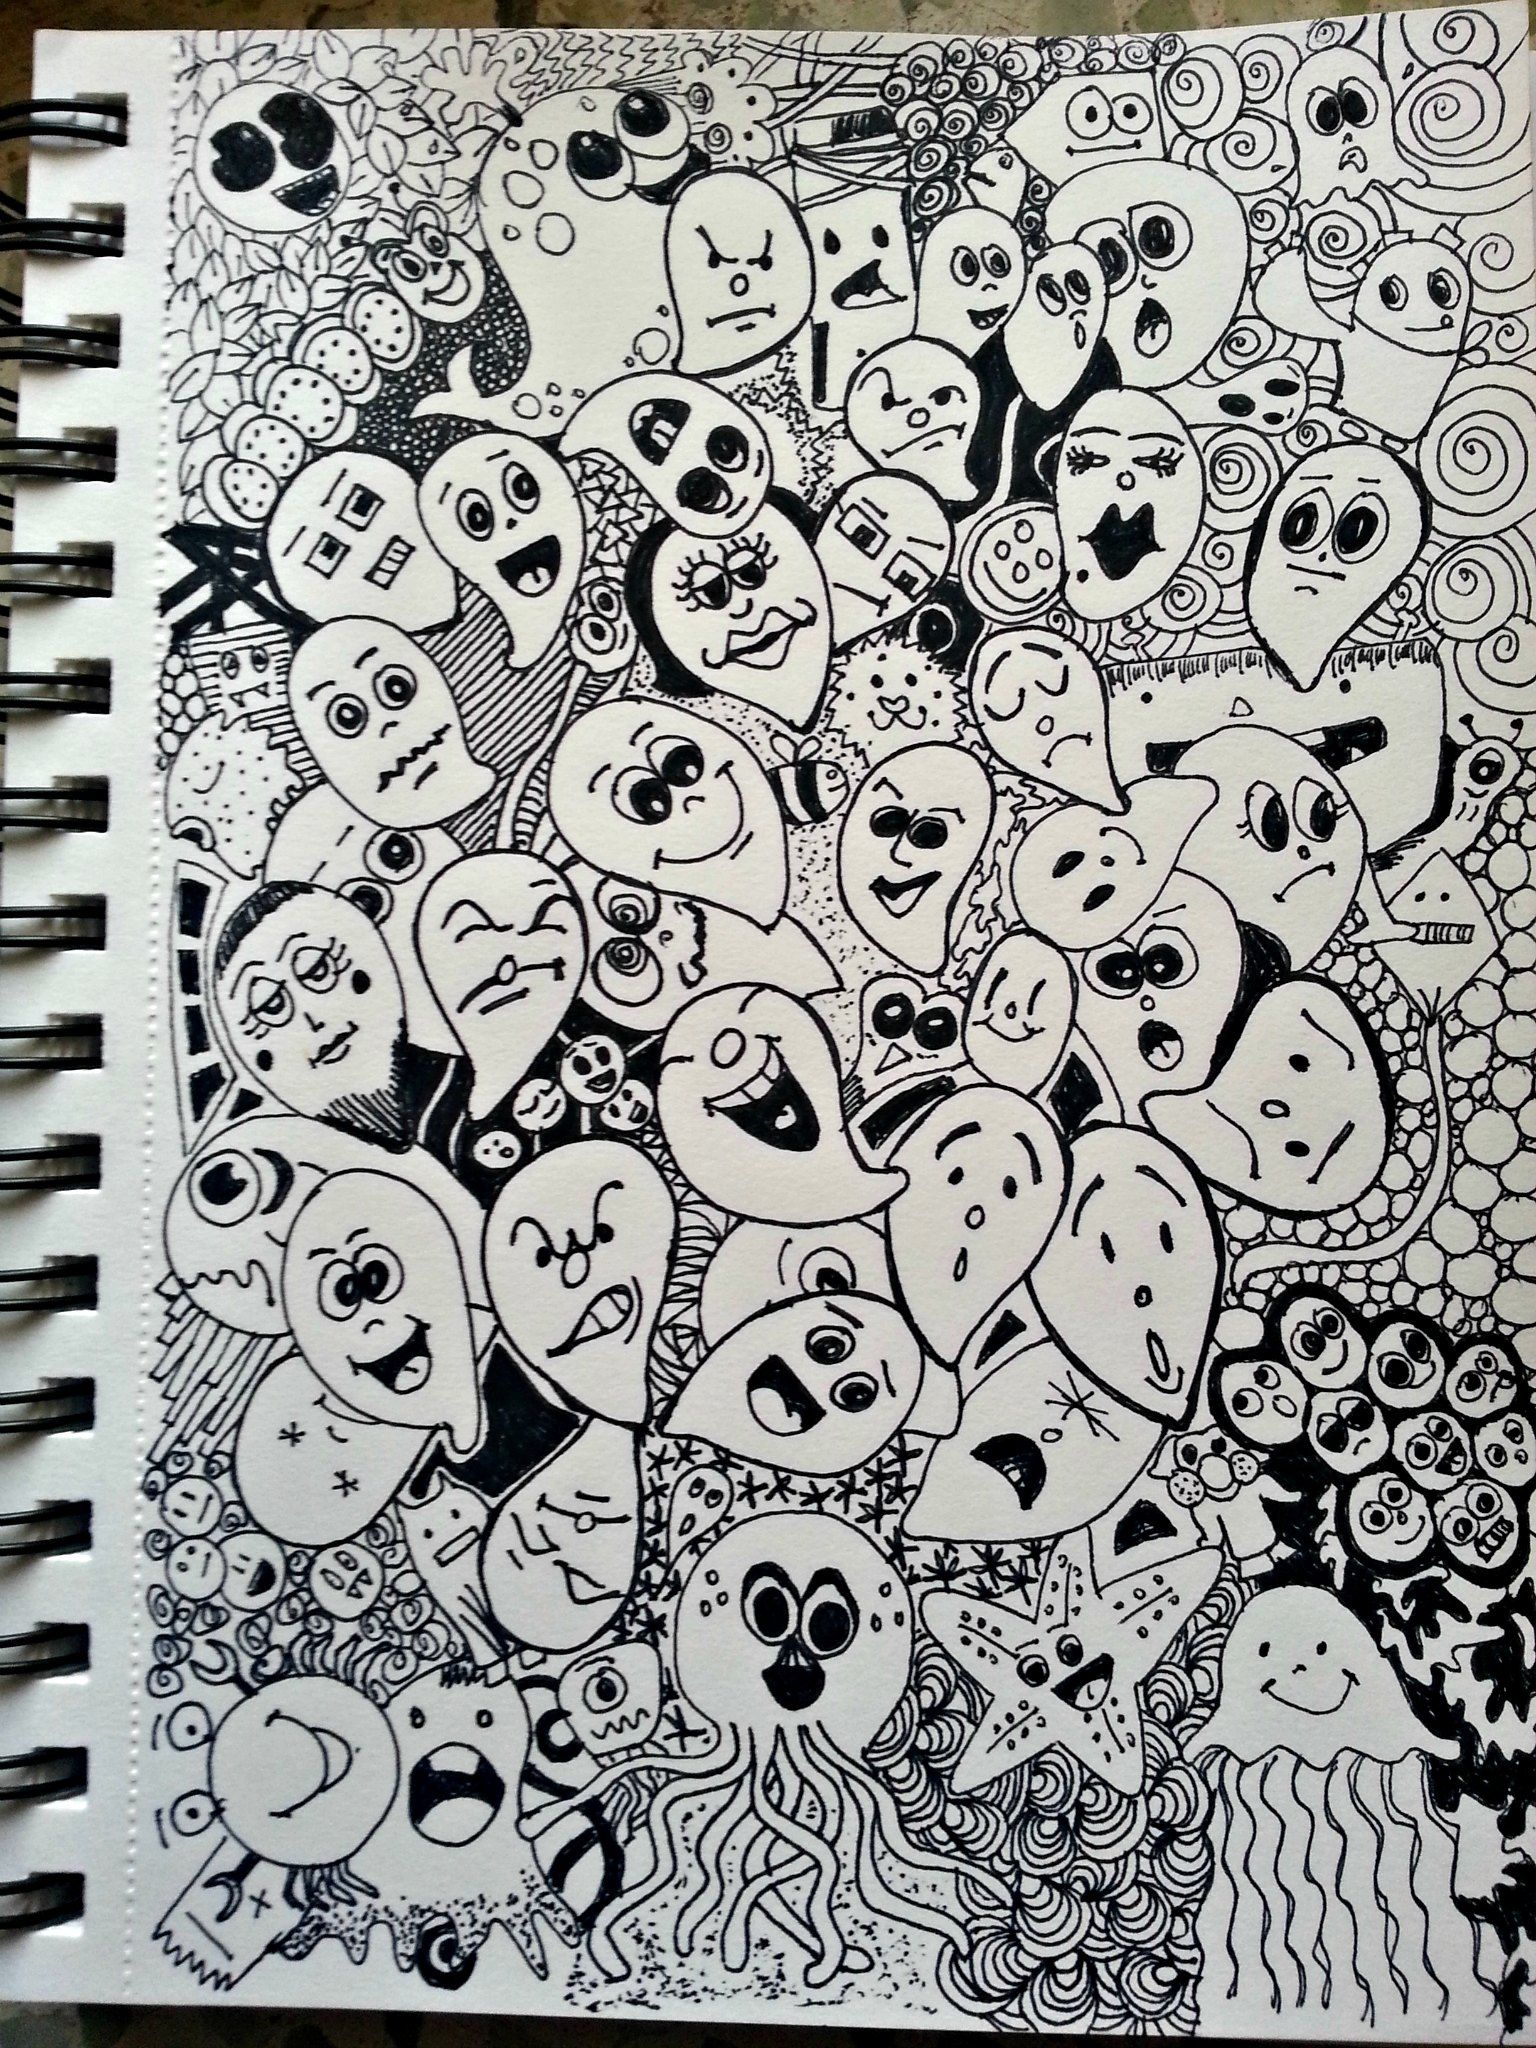 Massive Attack Of Tear Drops And Other Creatures Cluster Doodle Doodle Art Doodles Art Boards